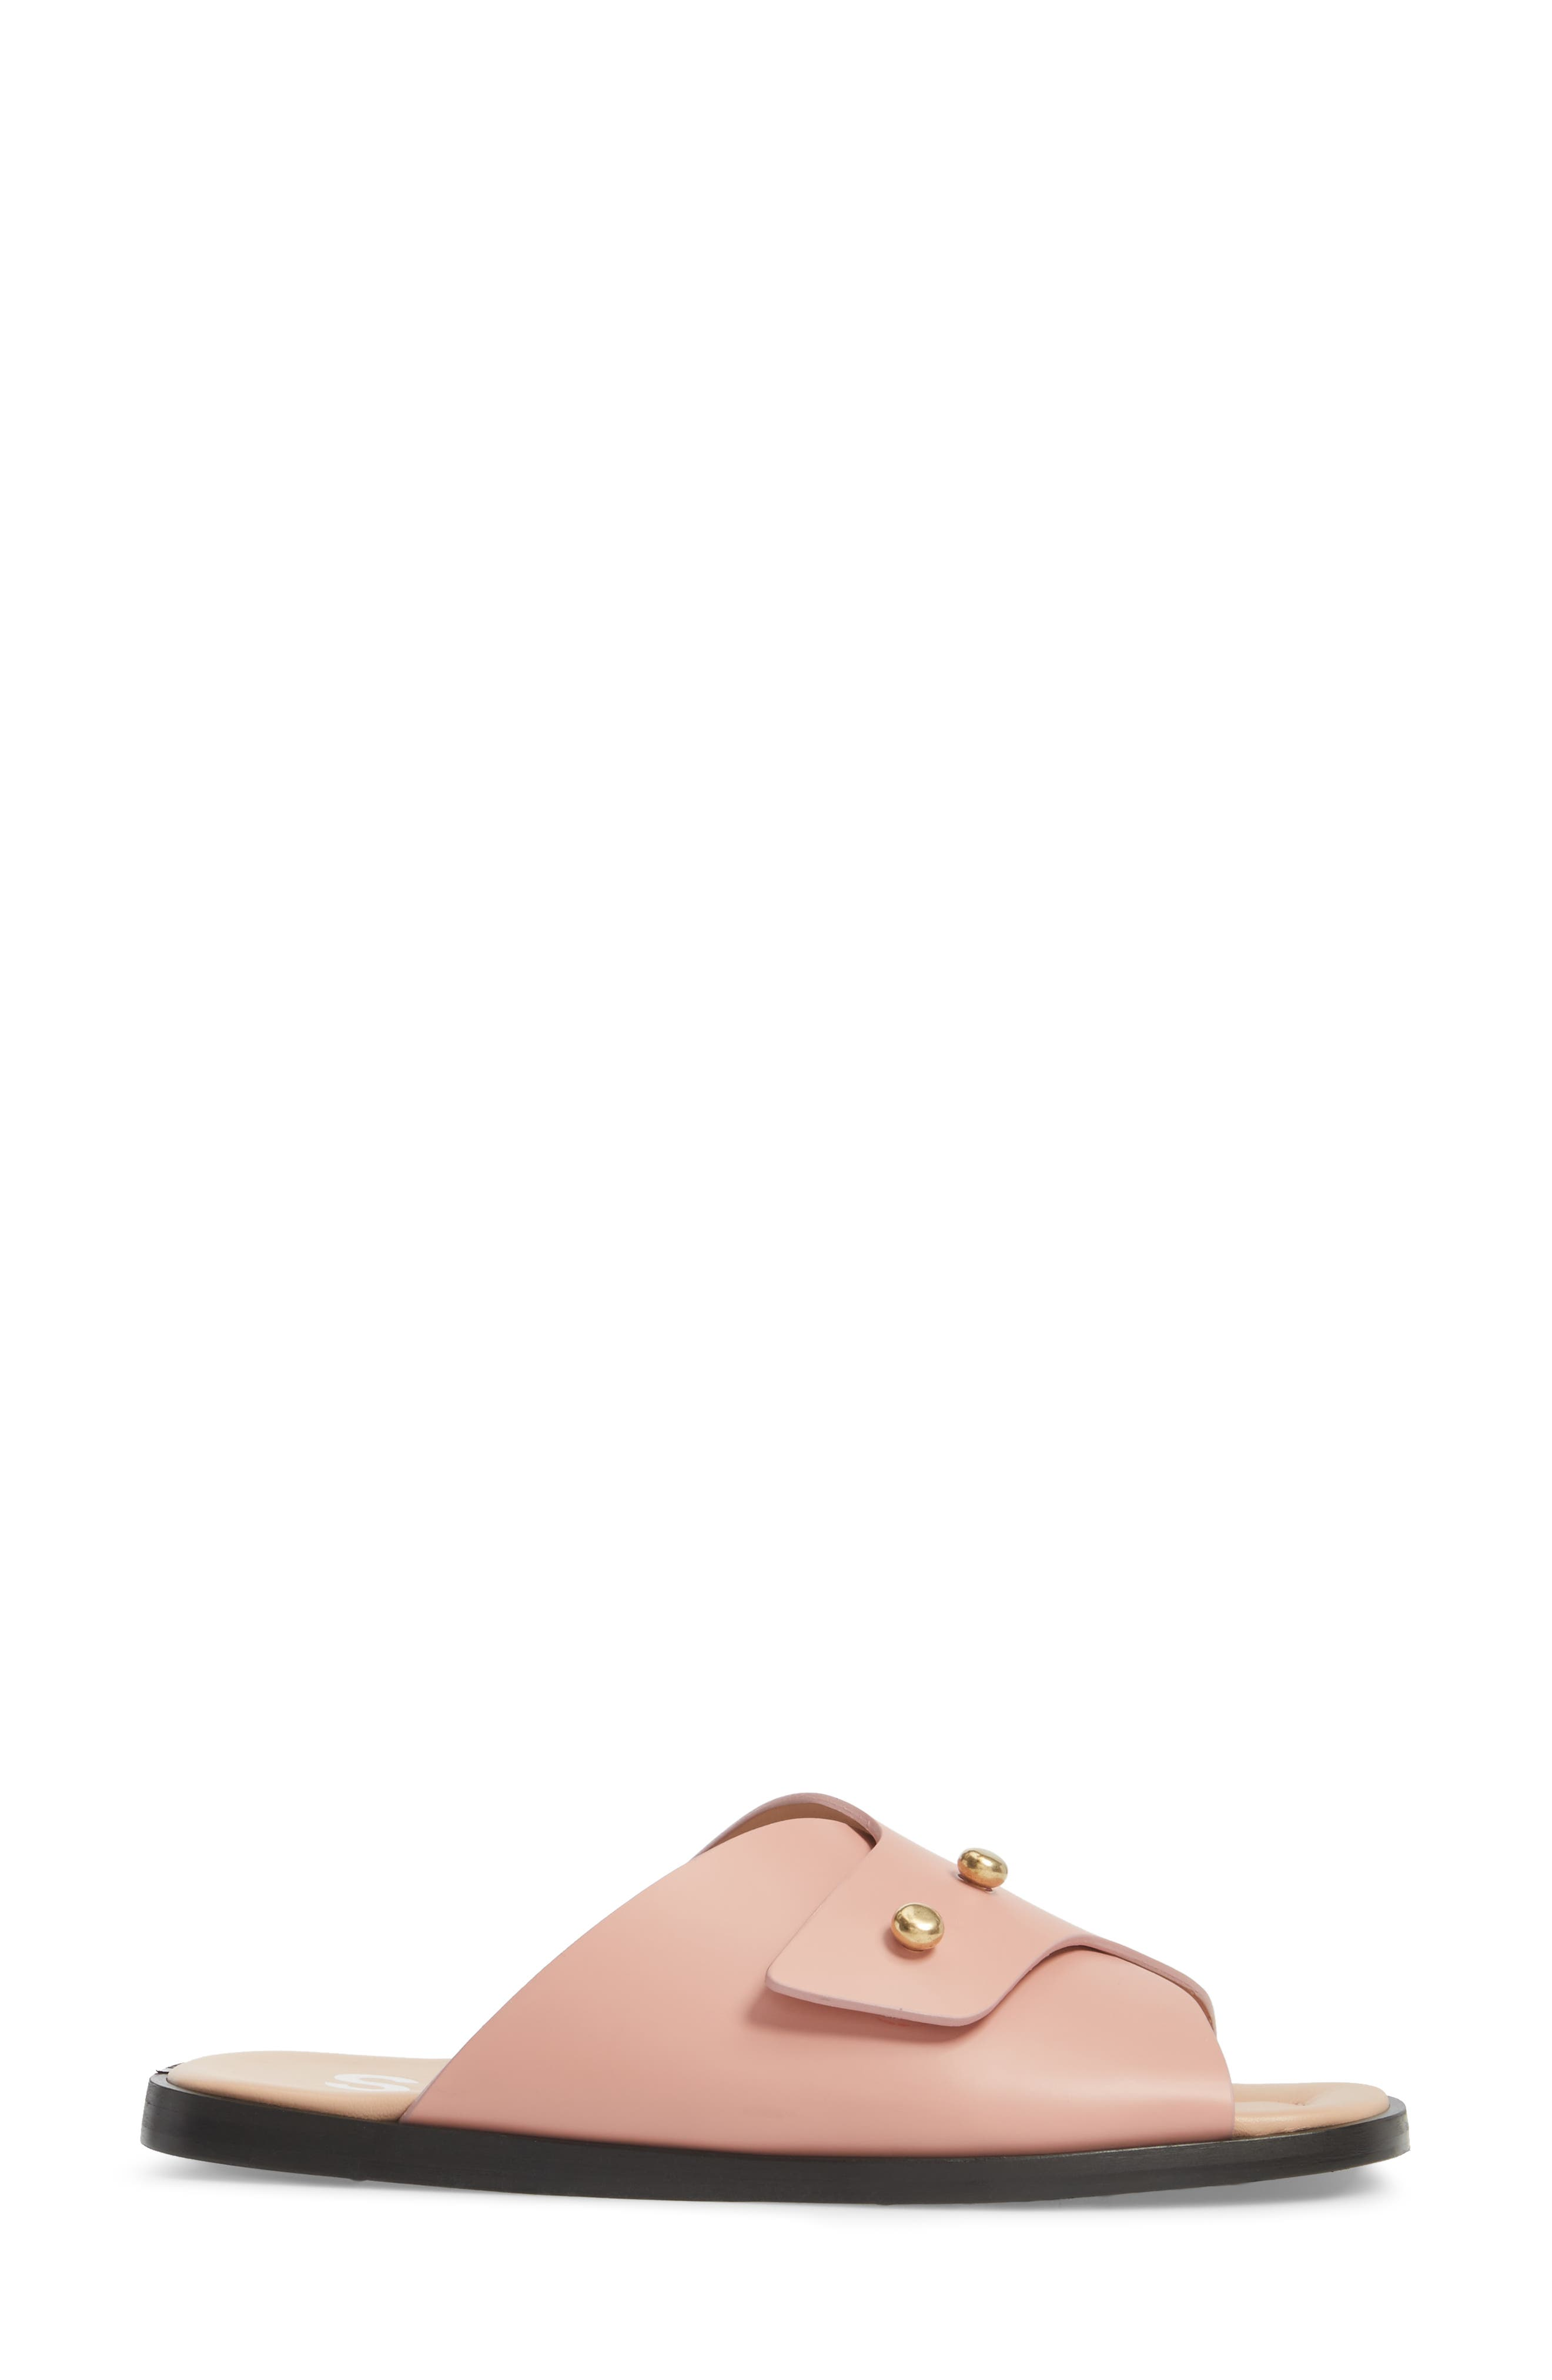 Jilly Studded Slide Sandal,                             Alternate thumbnail 3, color,                             Pink